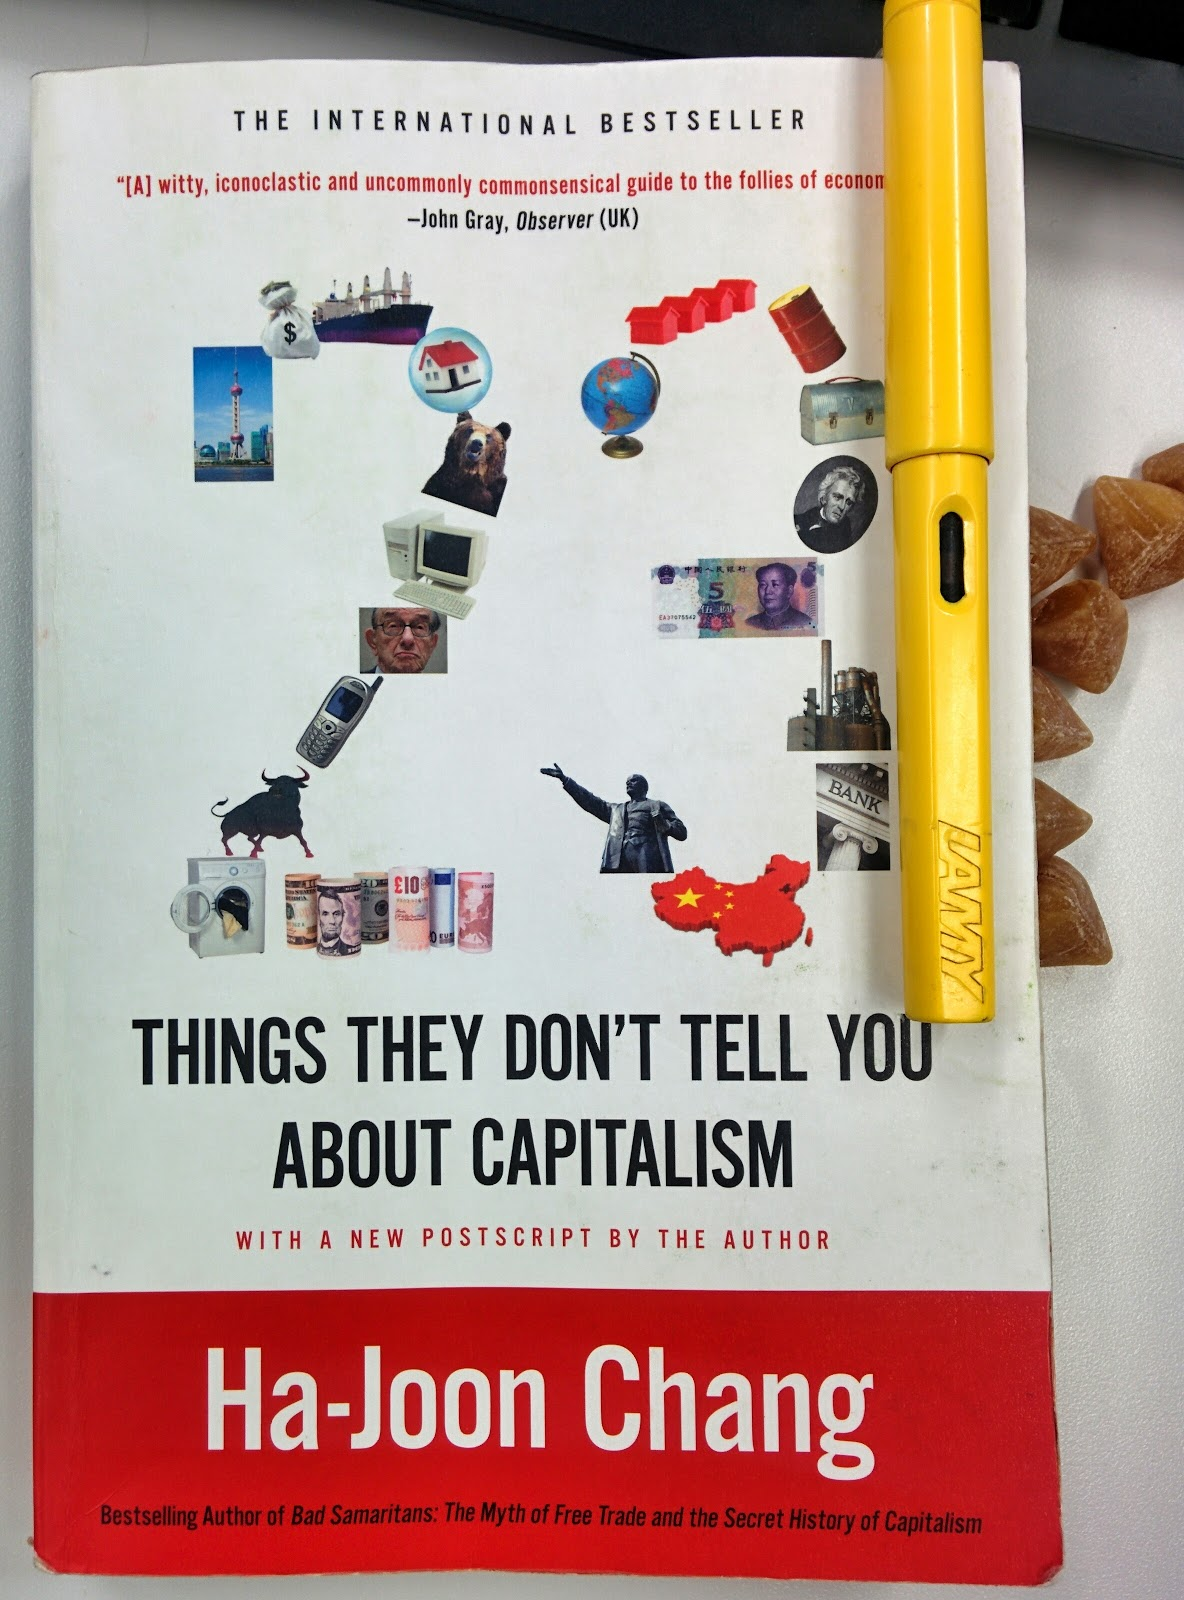 Why has capitalism become an adverse topic throughout history?